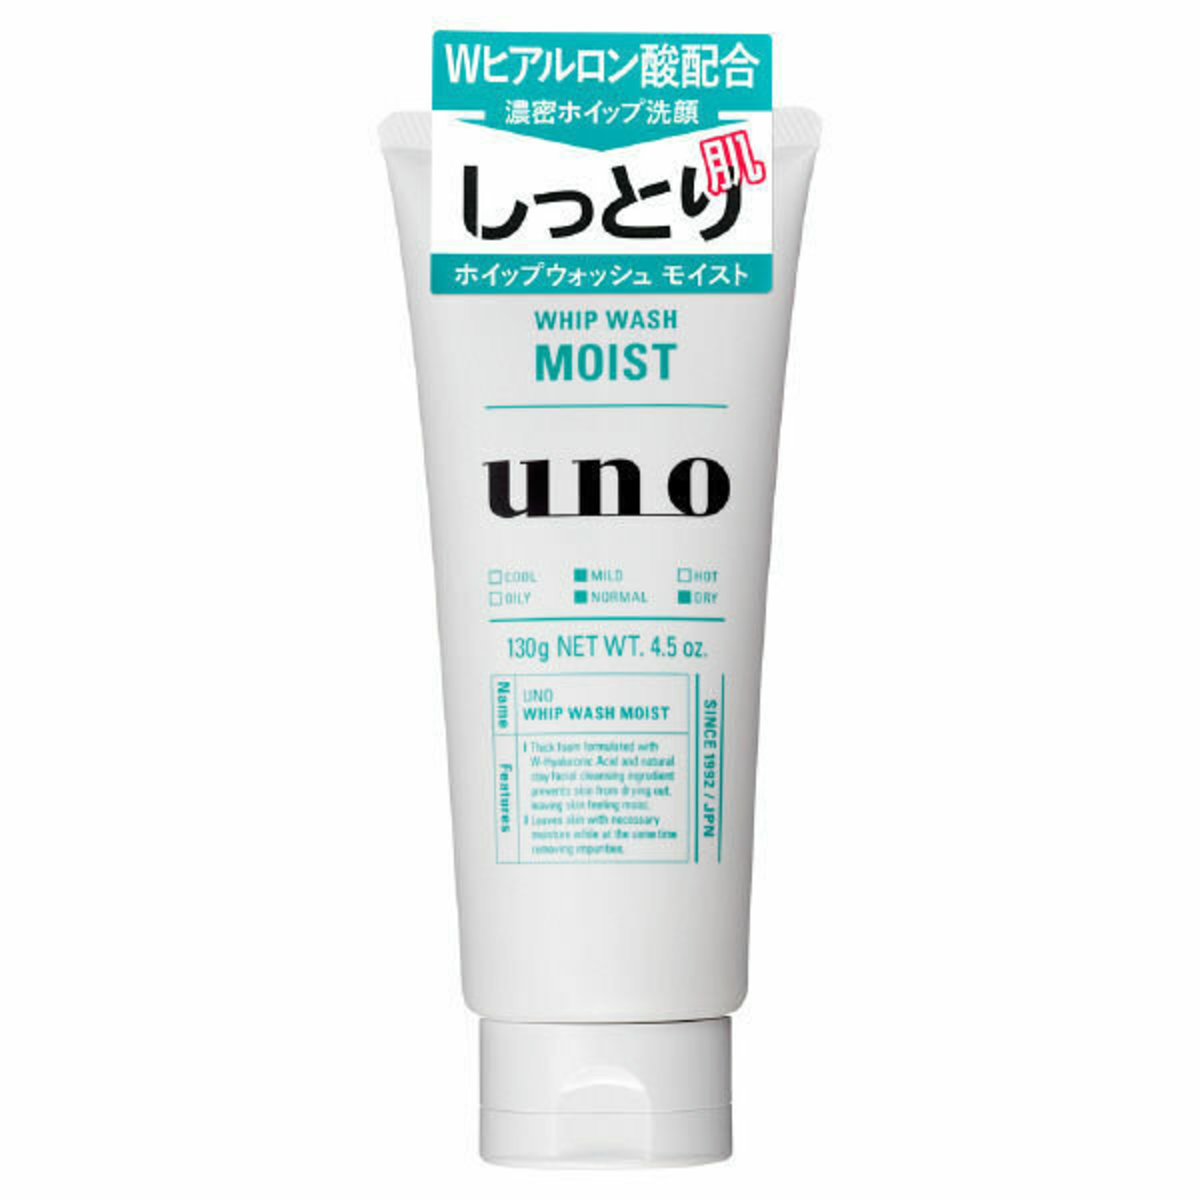 UNO Men's Face Whip Wash MOIST 130g  (Parallel import)